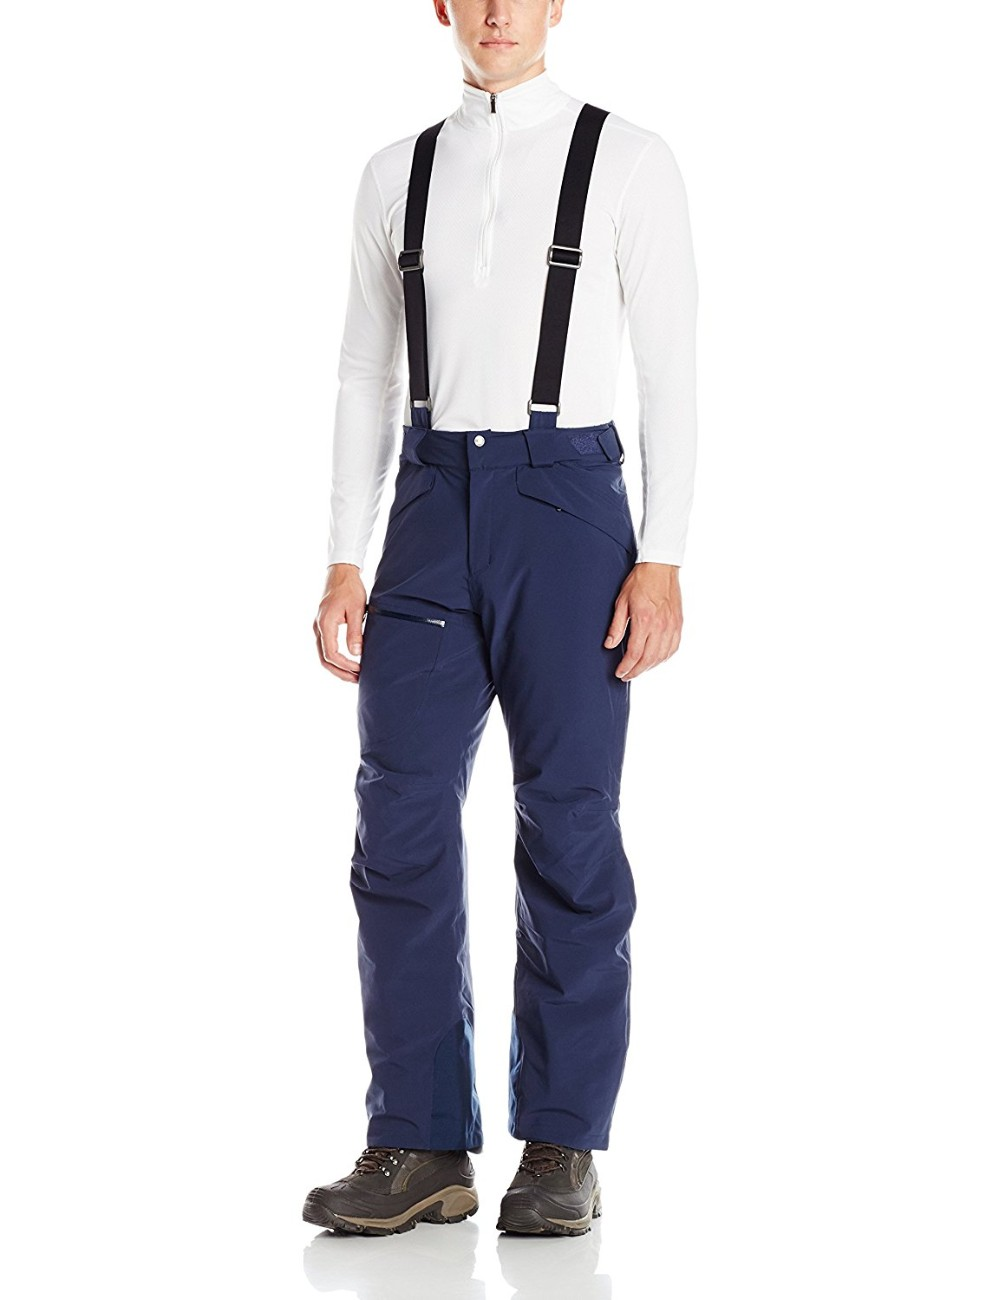 workers overall uniforms work pants unisex painters bib pants